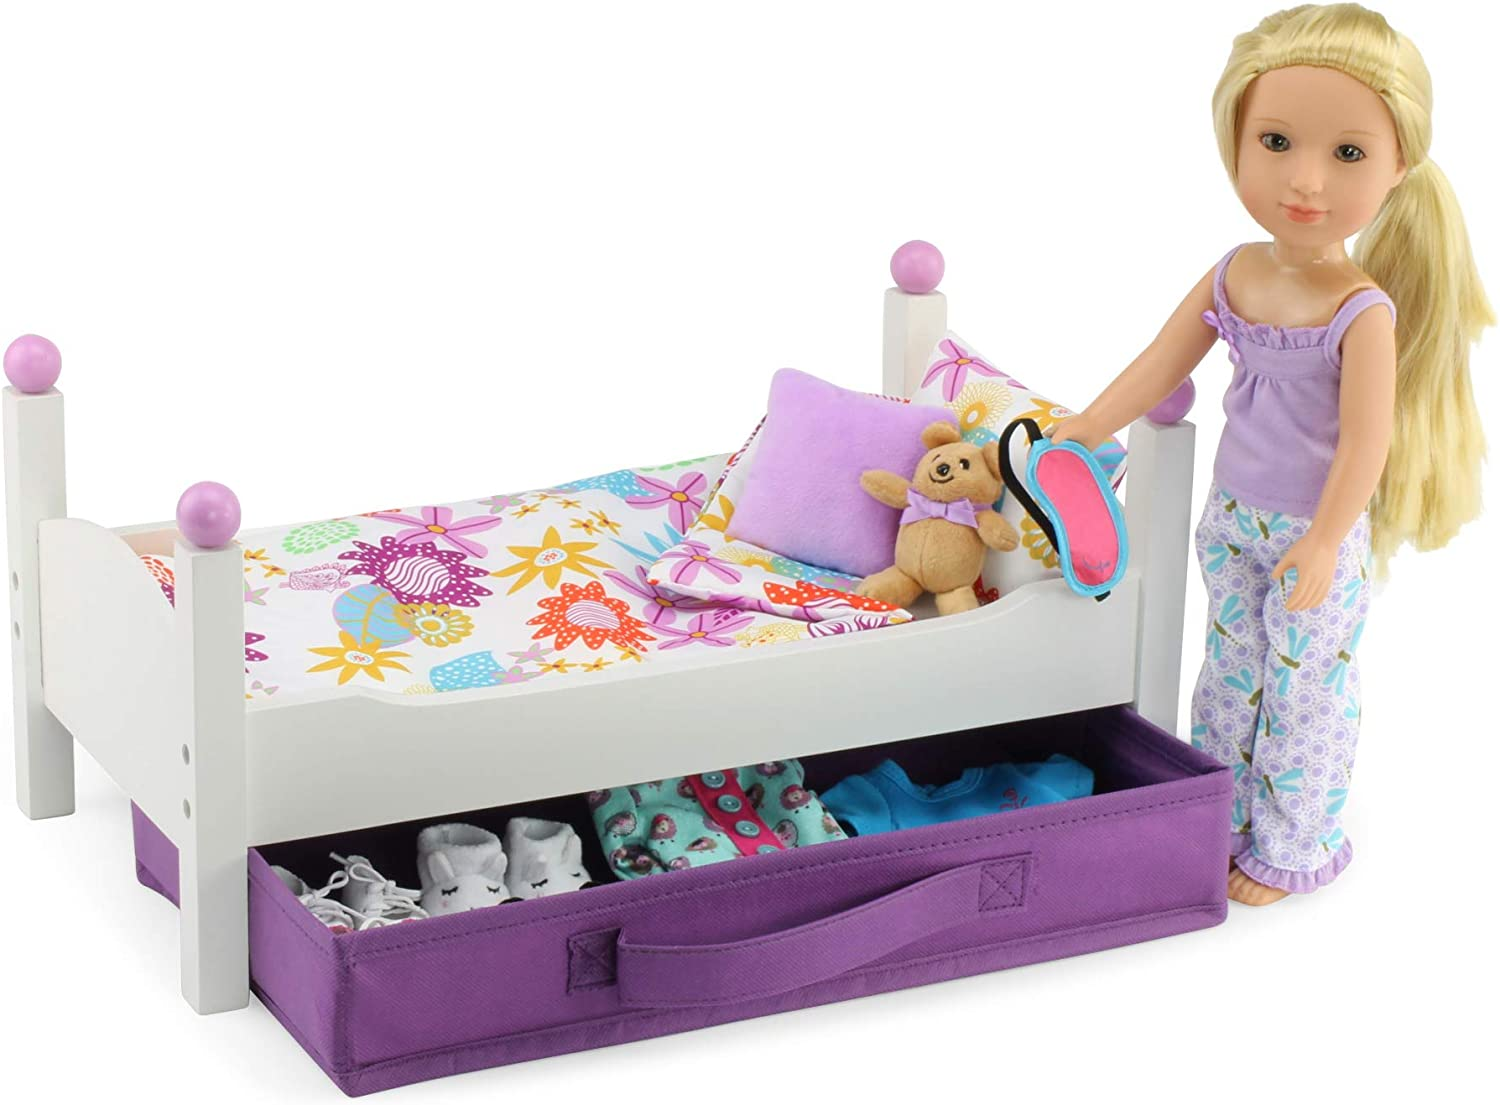 Classic White Single Stackable 14 Doll Bed Emily Rose 14 Inch Doll Bed Fits 14 American Girl Wellie Wishers and Glitter Girls Dolls Includes 1 Set of Colorful 4 Piece Bedding